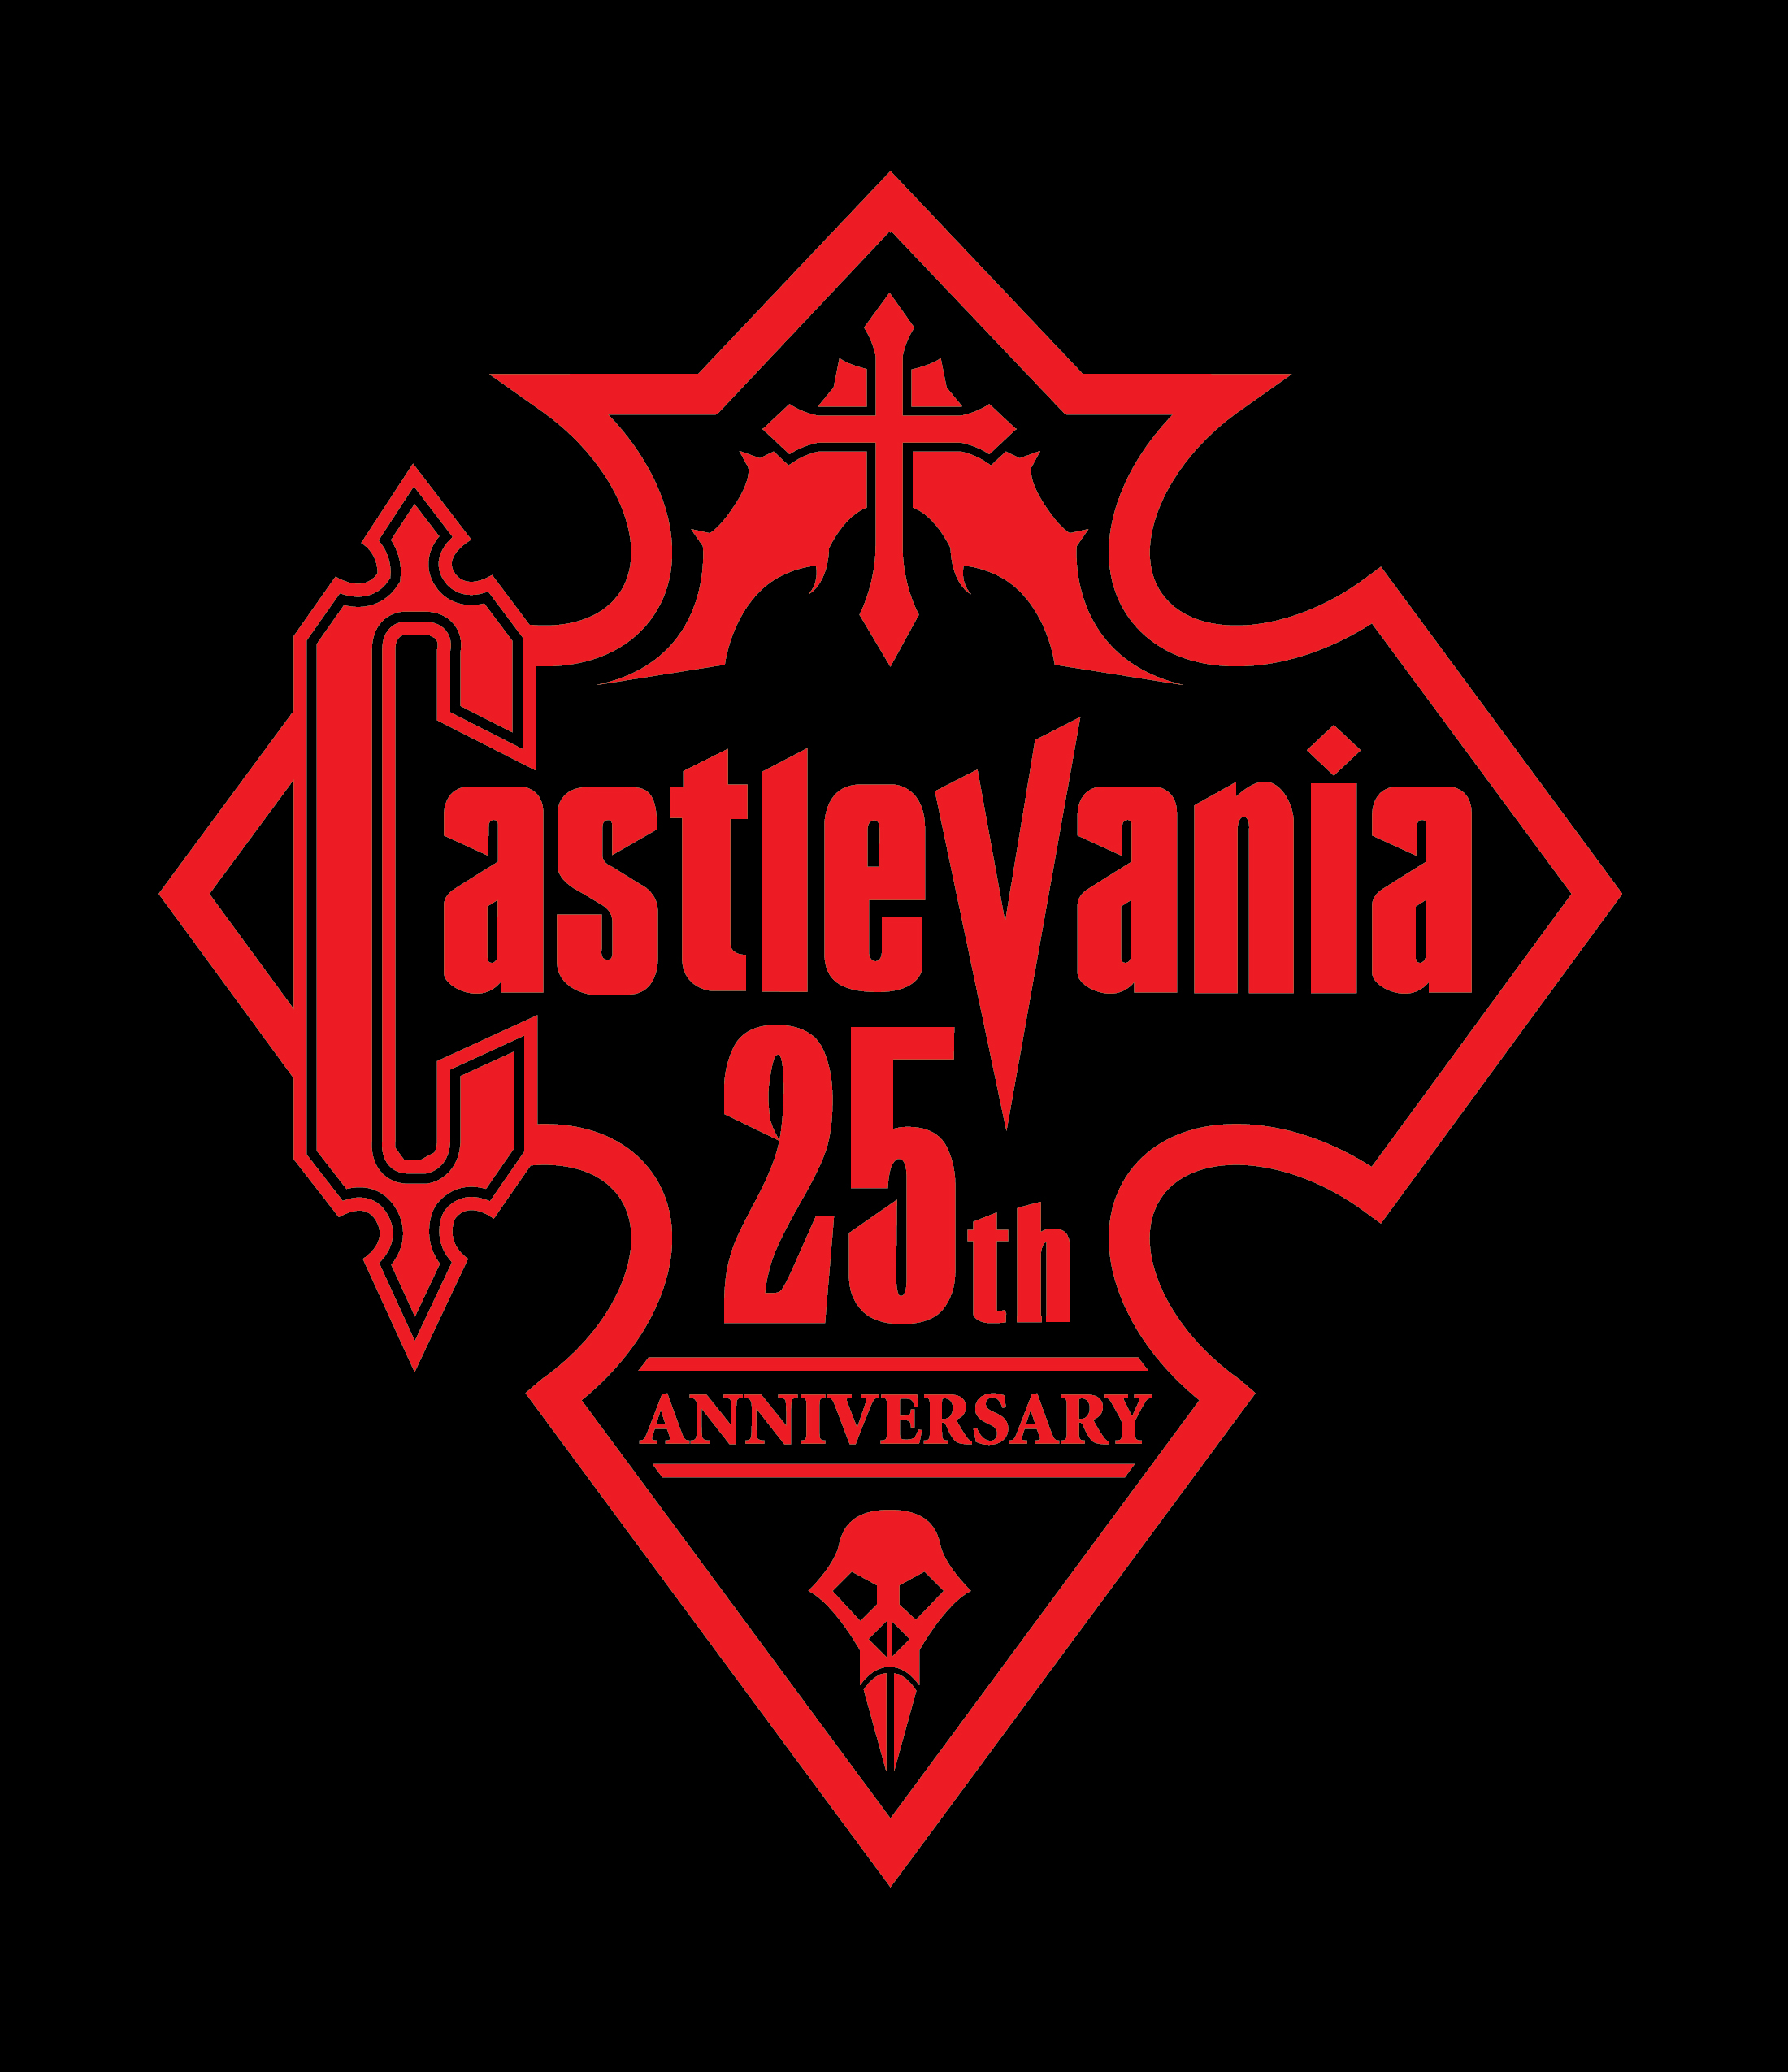 Celebrating The Anniversary Of Its Enduring Series Castlevania Fan Ron Supplies His Own Commemorative Logo In Hope That Company Will Take Notice